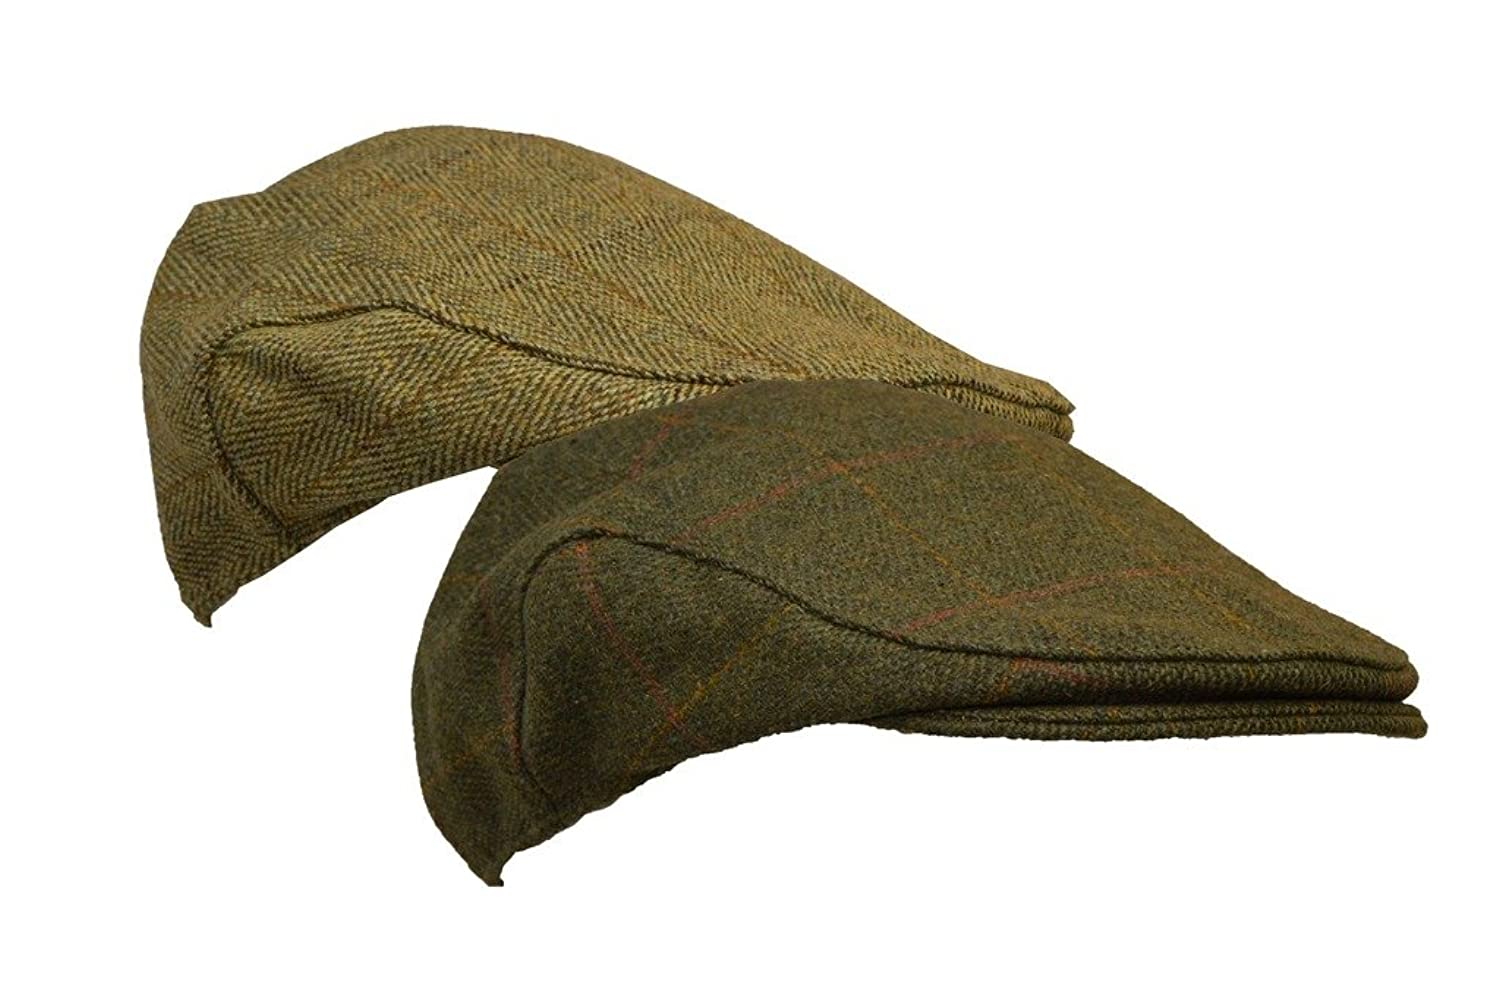 1940s Mens Hat Styles and History Derby Tweed Flat Cap Hunting Shooting Countrywear Hat $22.02 AT vintagedancer.com